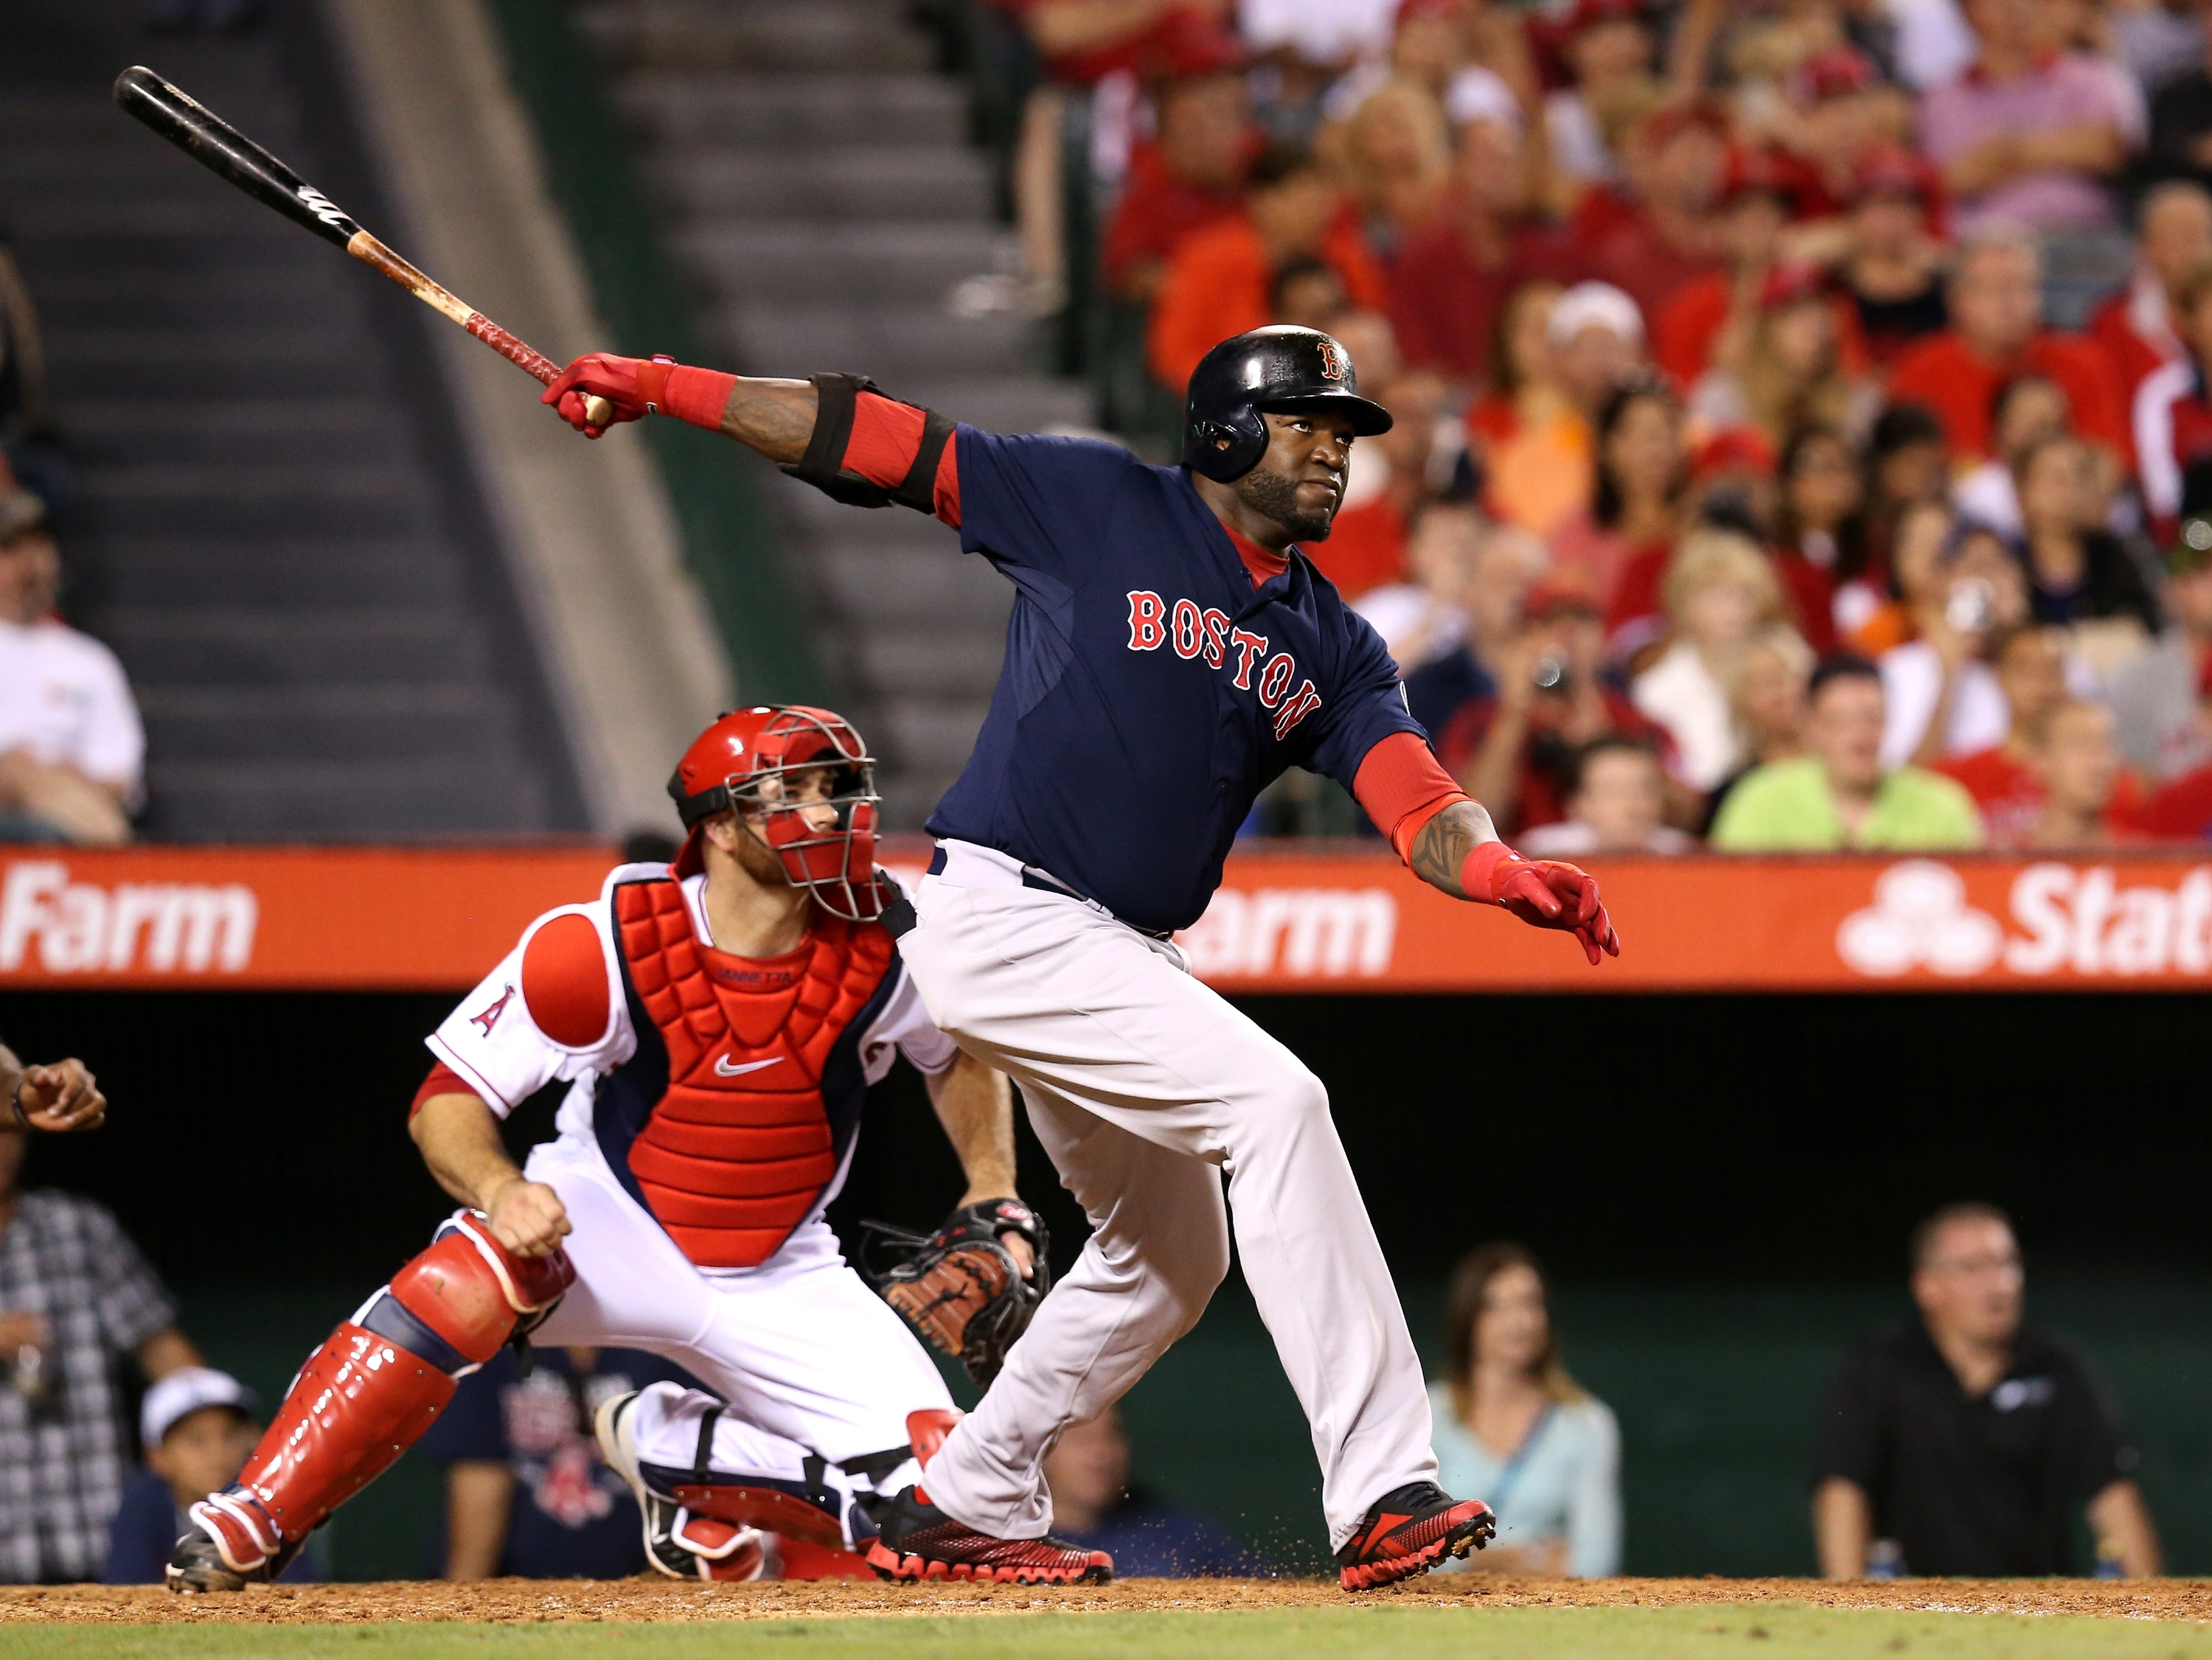 All-Star David Ortiz leads the Red Sox in HRs and RBIs. (Getty Images)